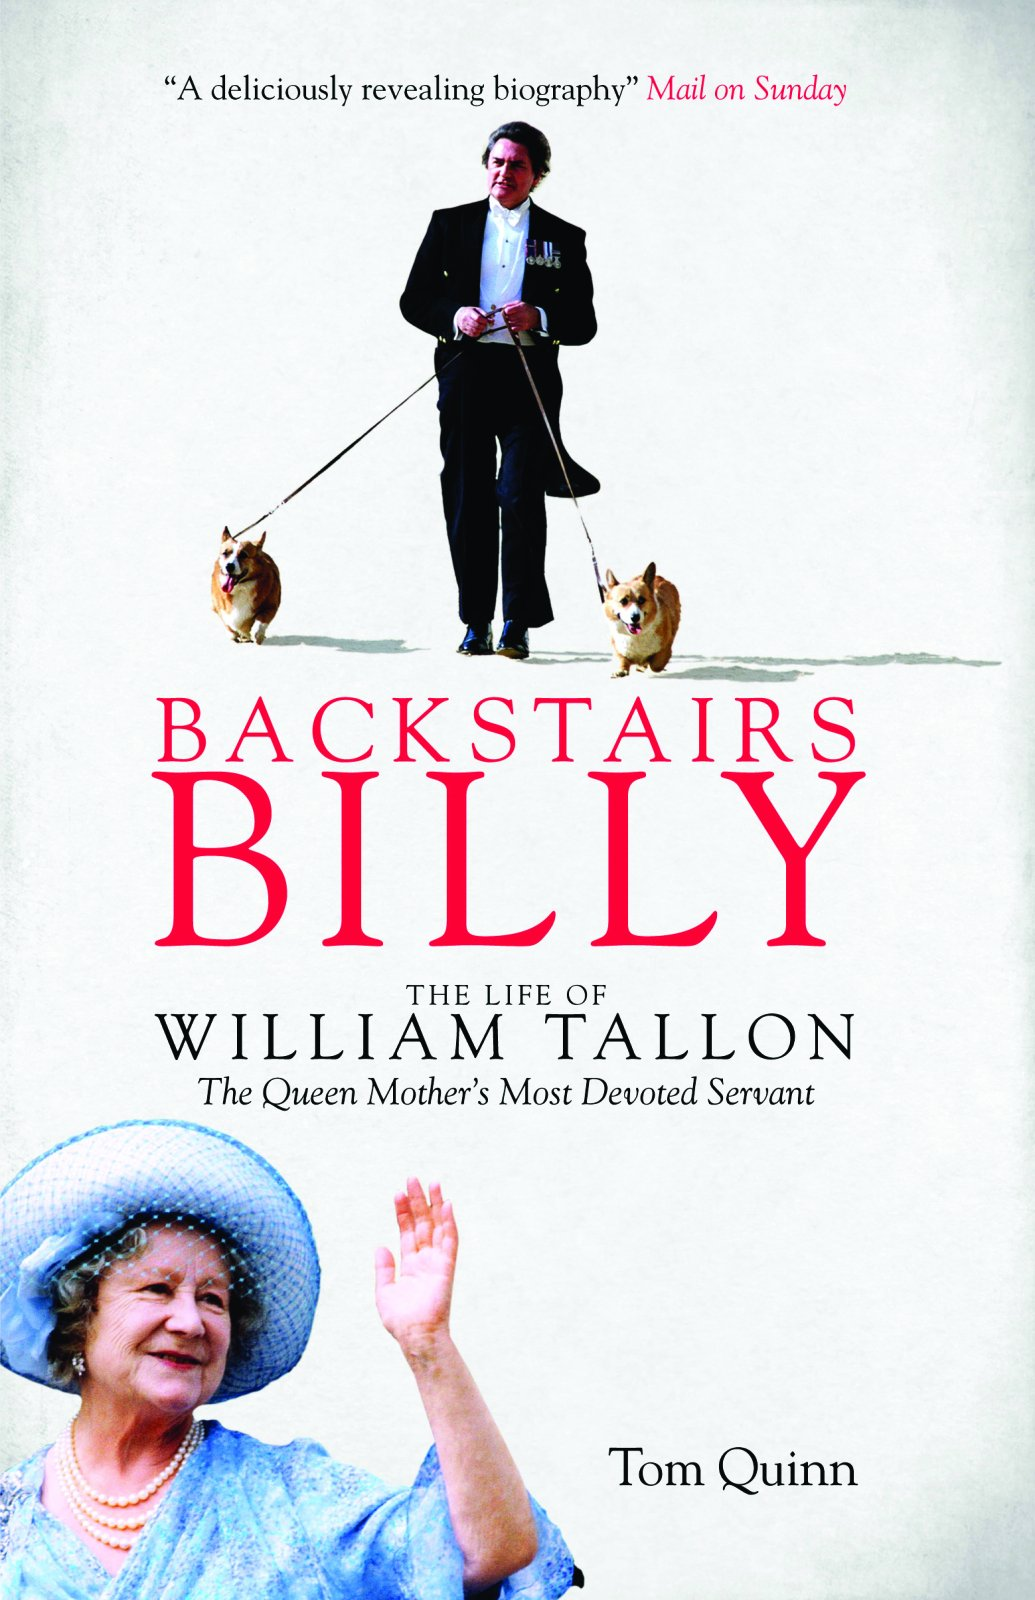 Backstairs Billy: The Life of William Tallon, the Queen Mother's Most  Devoted Servant: Tom Quinn: 9781785900006: Amazon.com: Books